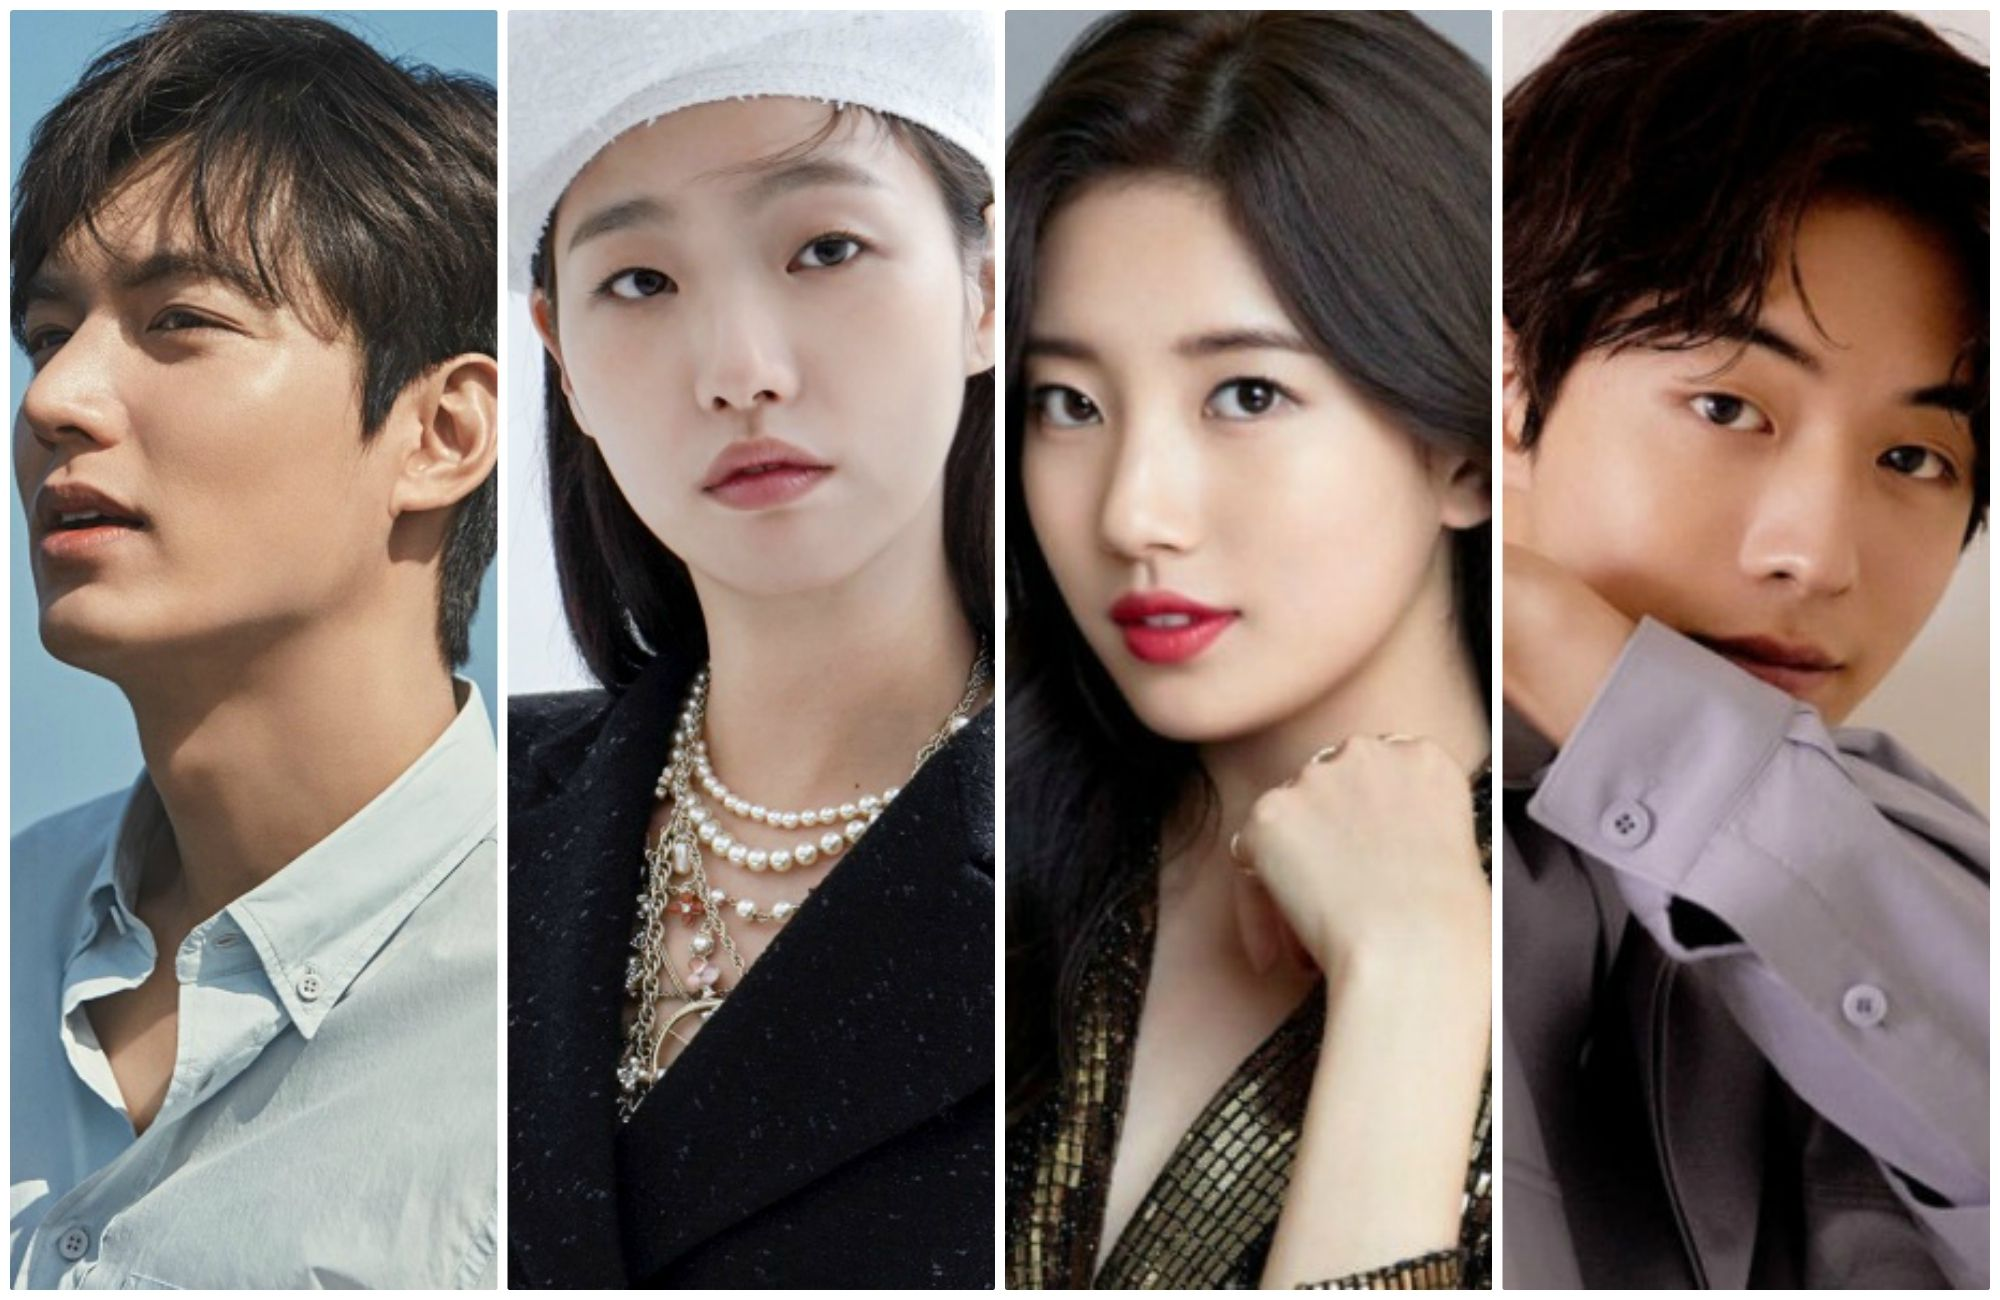 Lee Min Ho - Kim Go Eun, Seo Kang Joon - Park Min Young, Suzy - Nam Joo Hyuk, Park So Dam - Park Bo Gum are the 4 sweet couples expected on the Korean